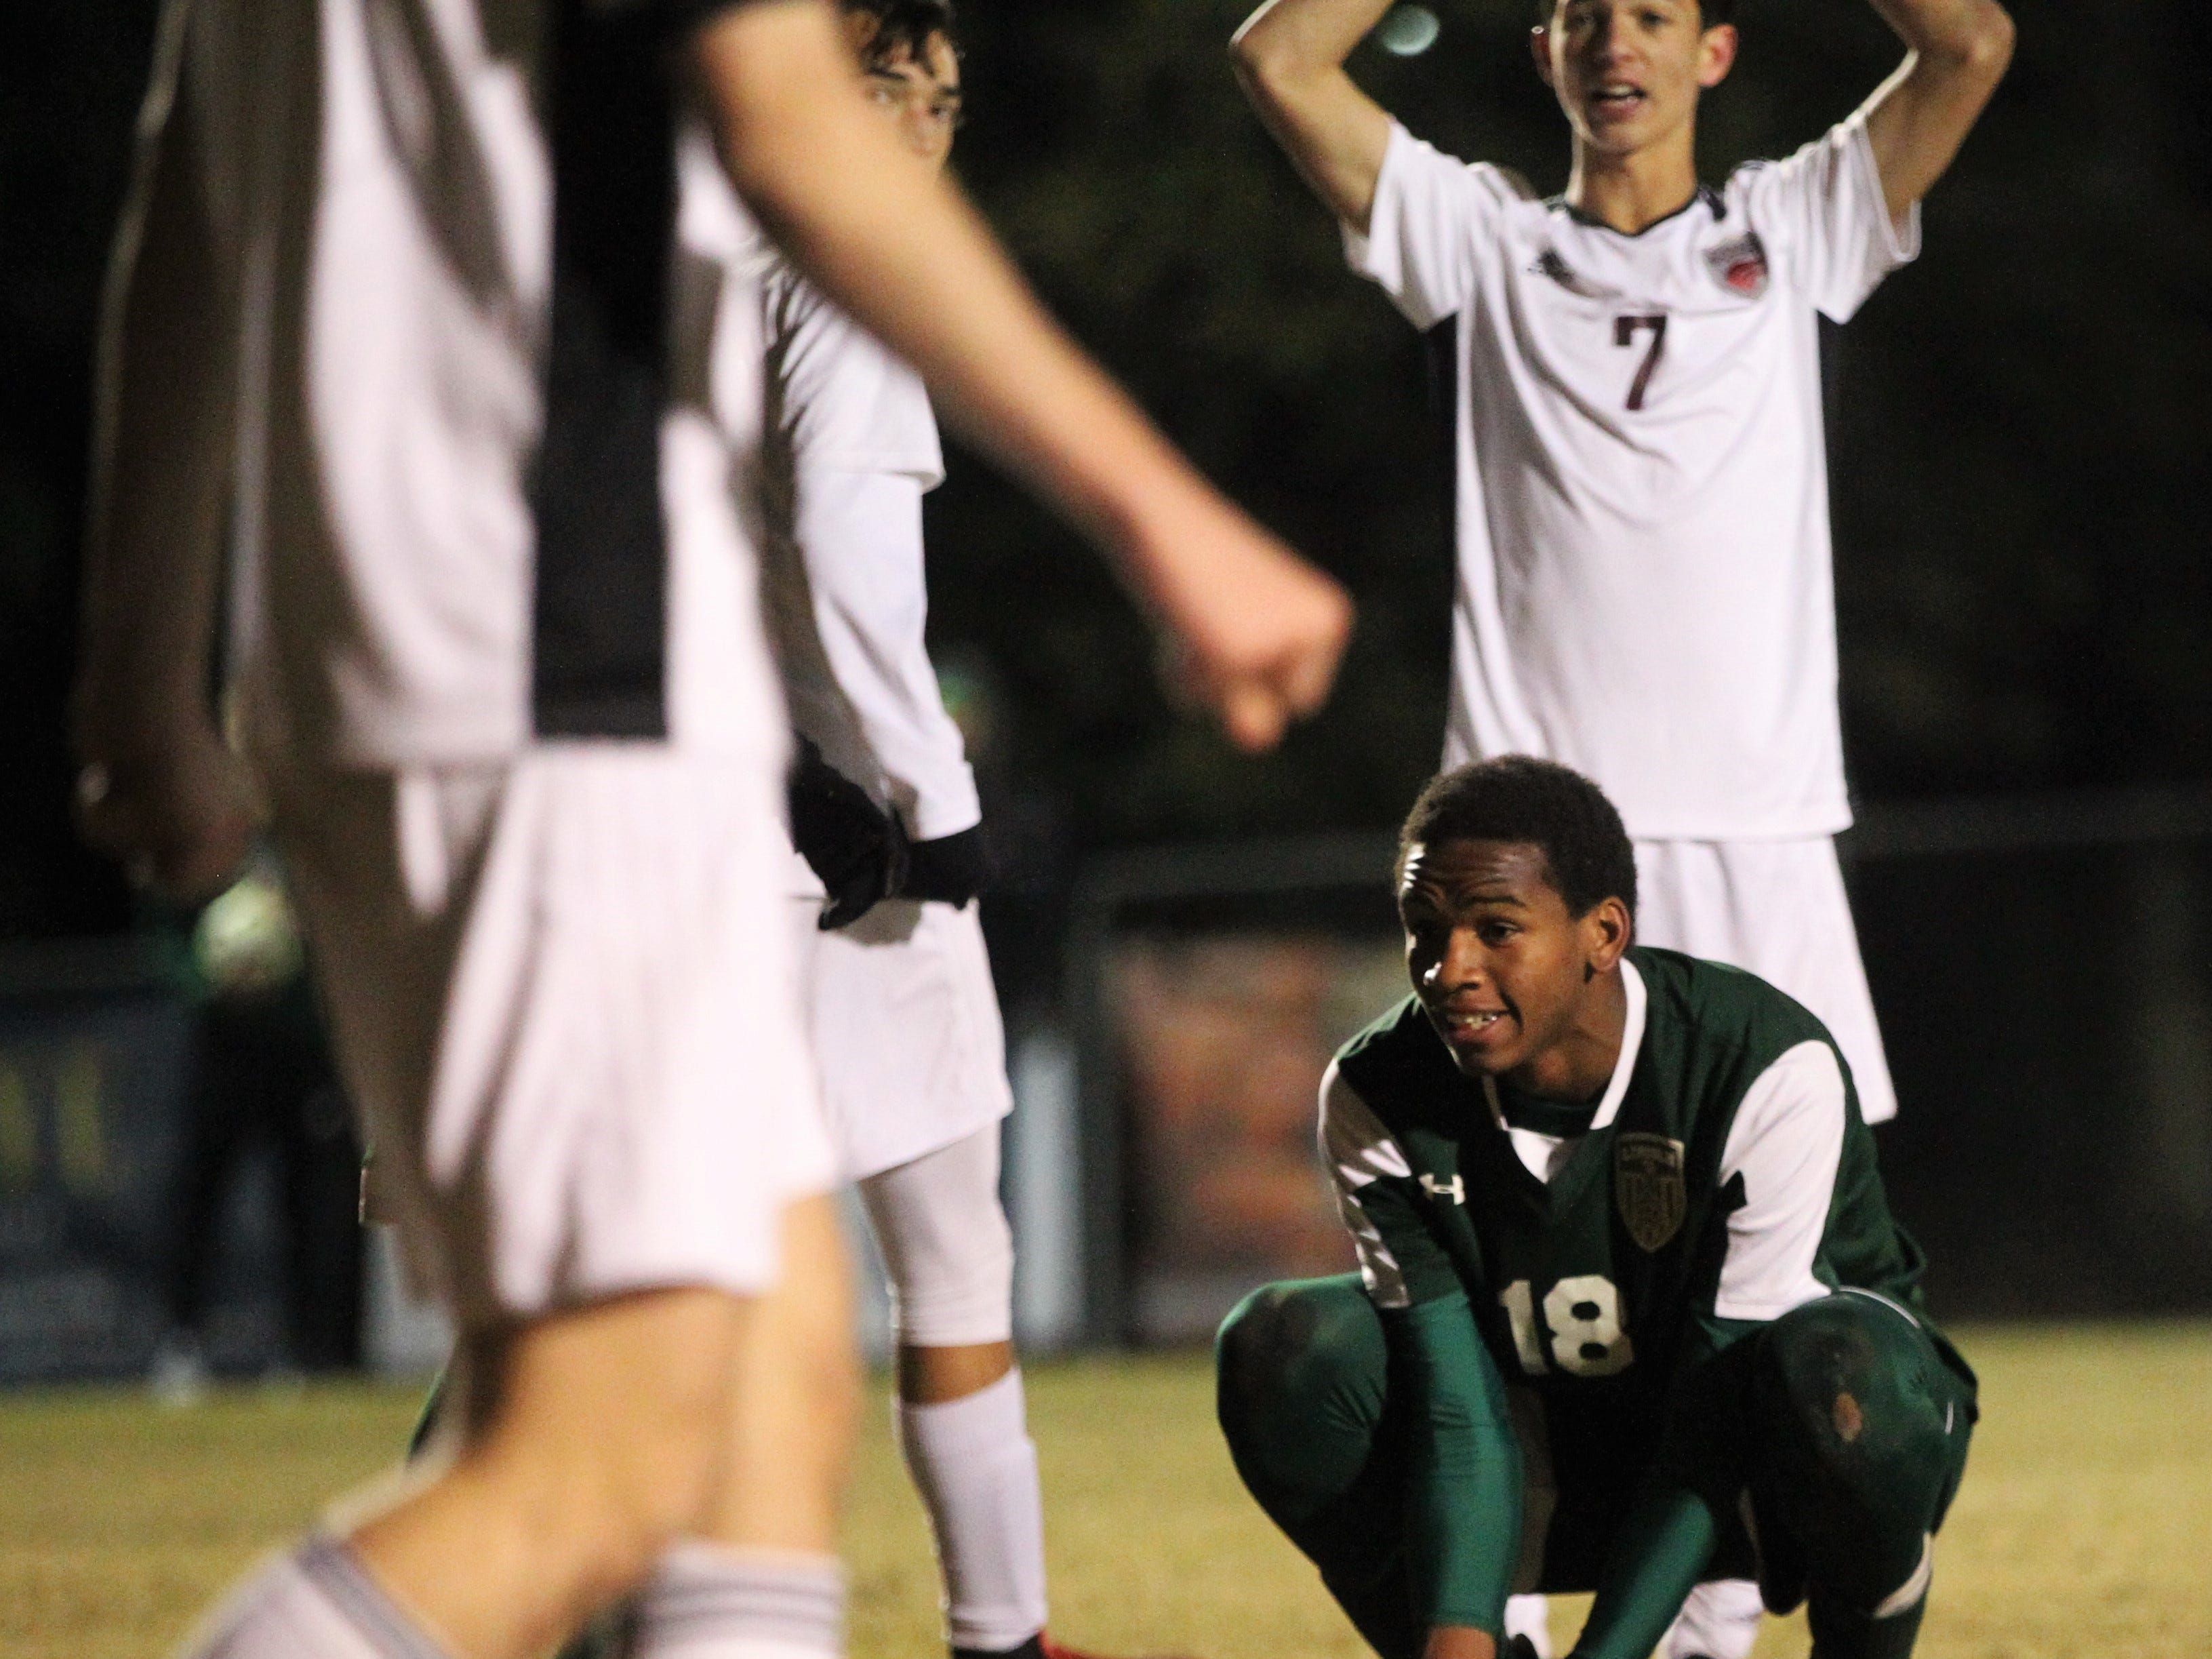 Lincoln's David Monroe reacts to a shot that goes wide of goal as Chiles' boys soccer team beat Lincoln 1-0 in a District 2-4A semifinal on Jan. 30, 2019.